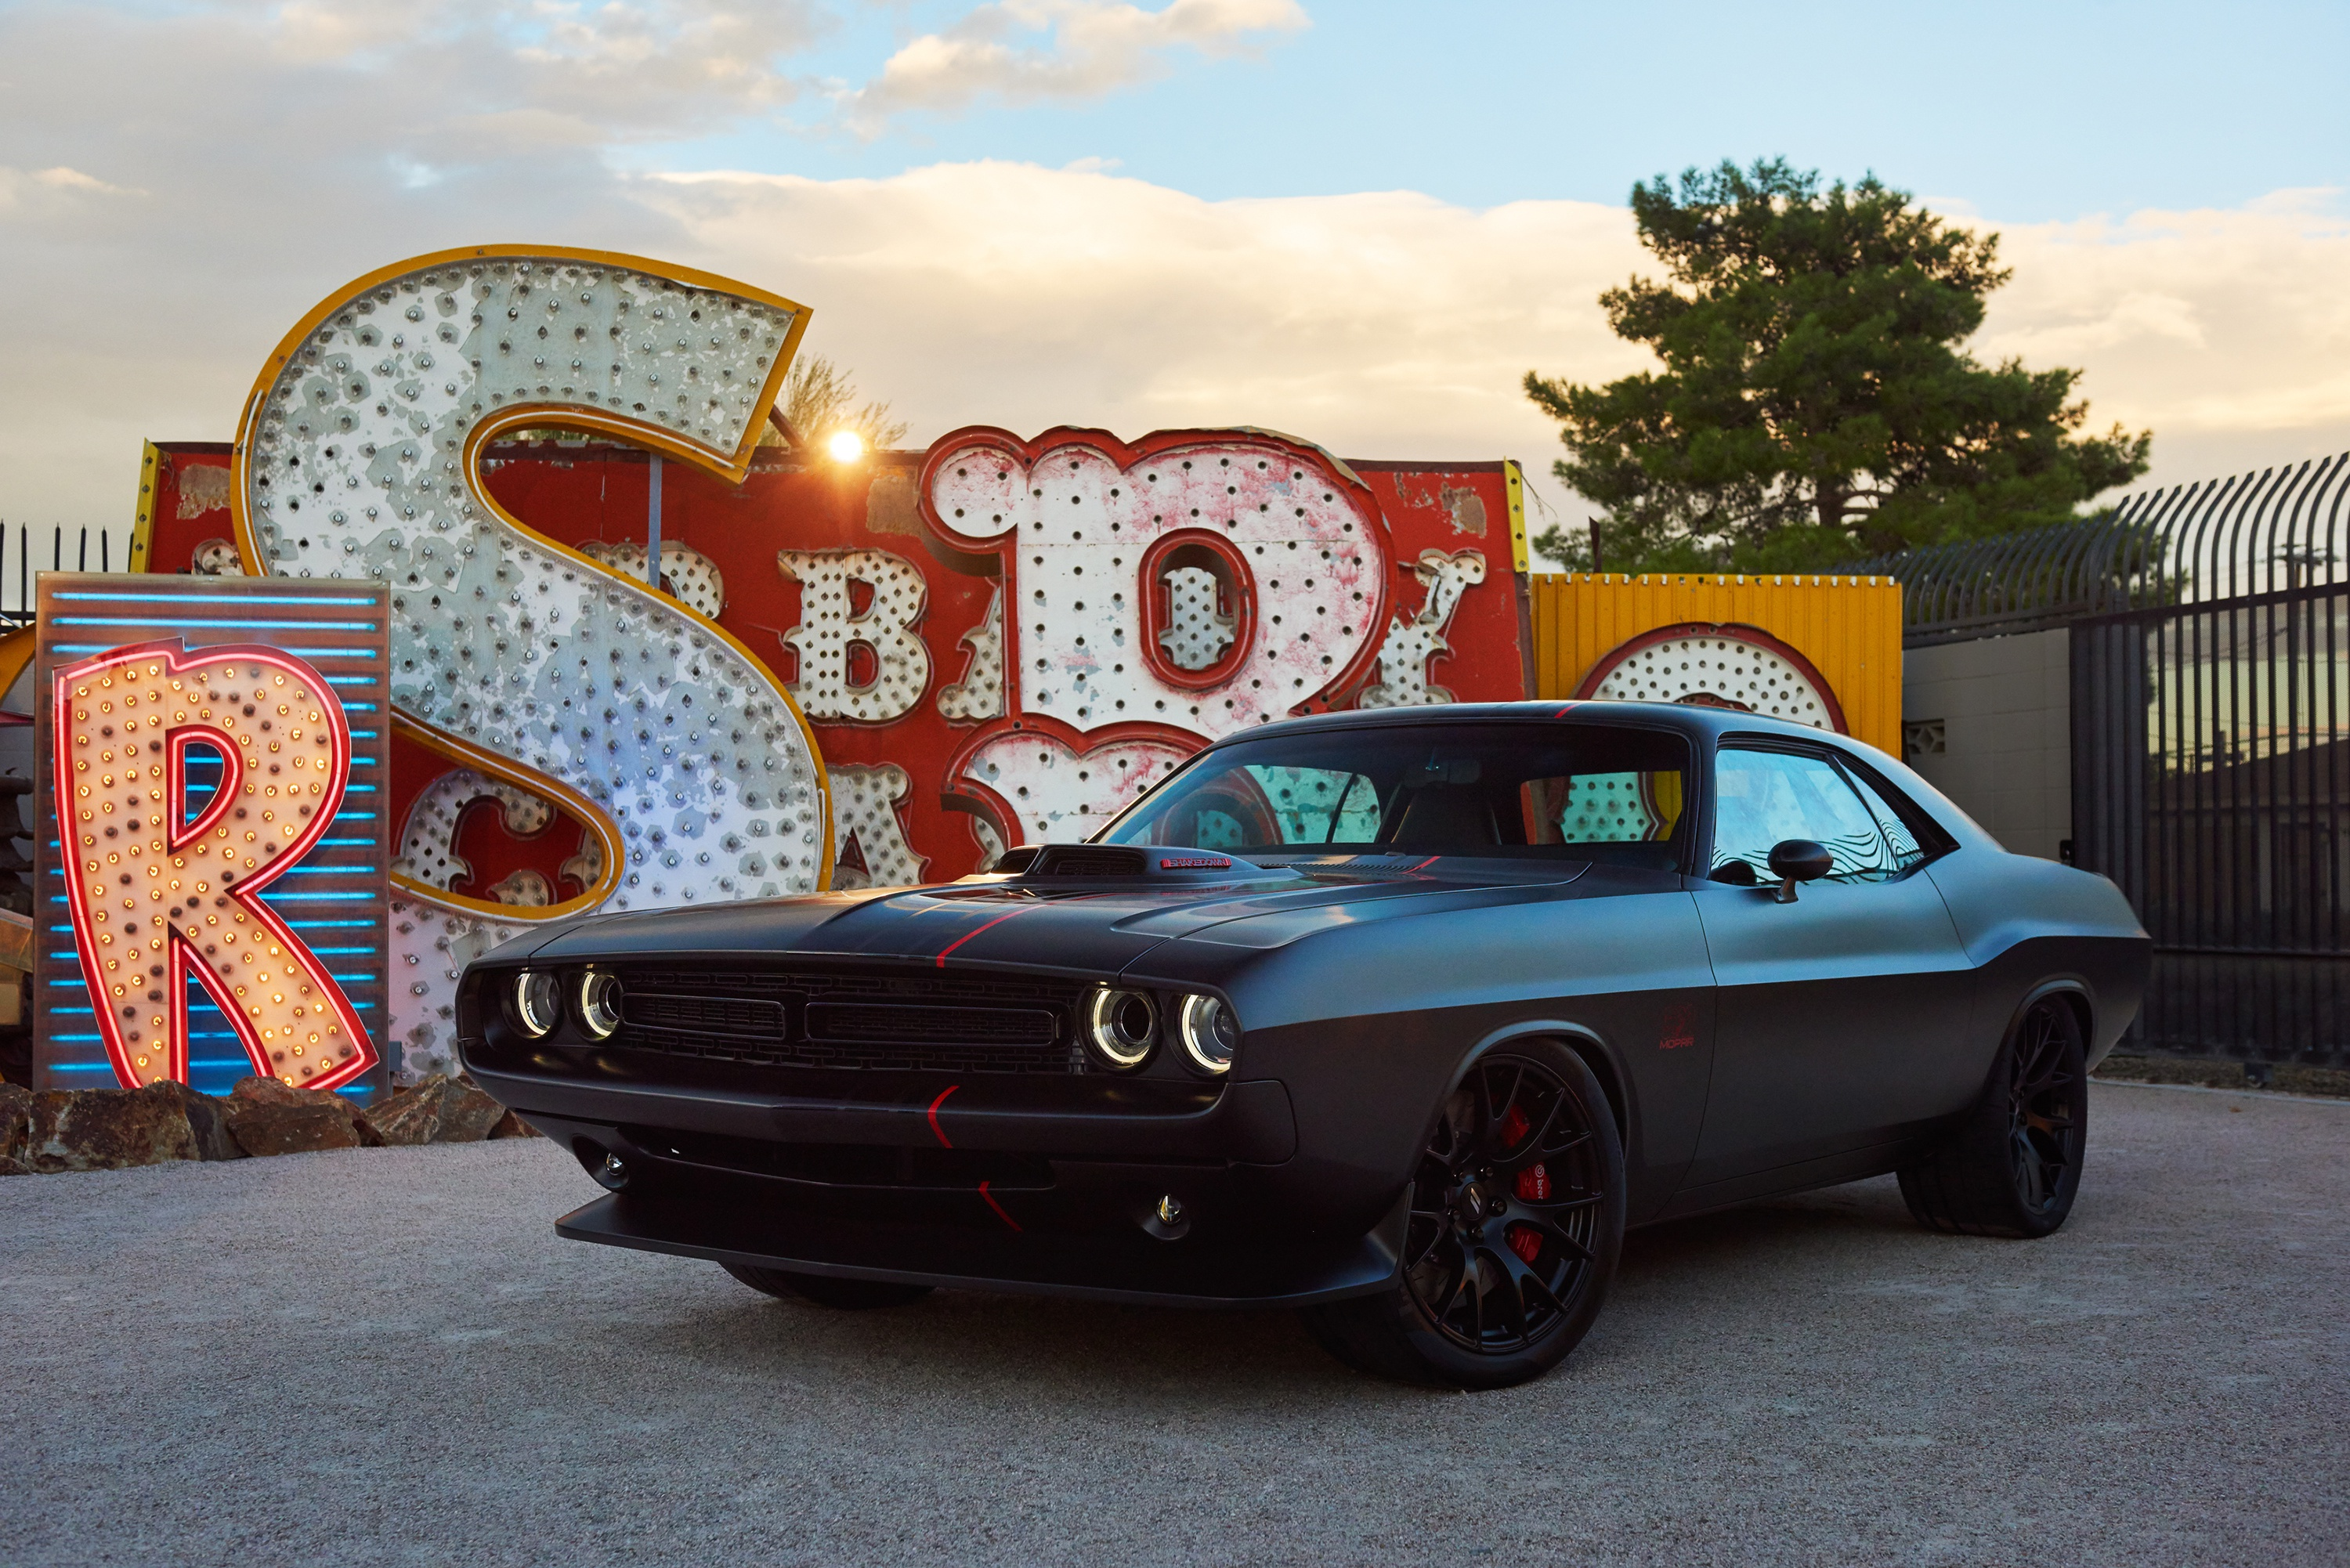 1366x768 Matte Black Dodge Challenger 1366x768 Resolution Hd 4k Wallpapers Images Backgrounds Photos And Pictures